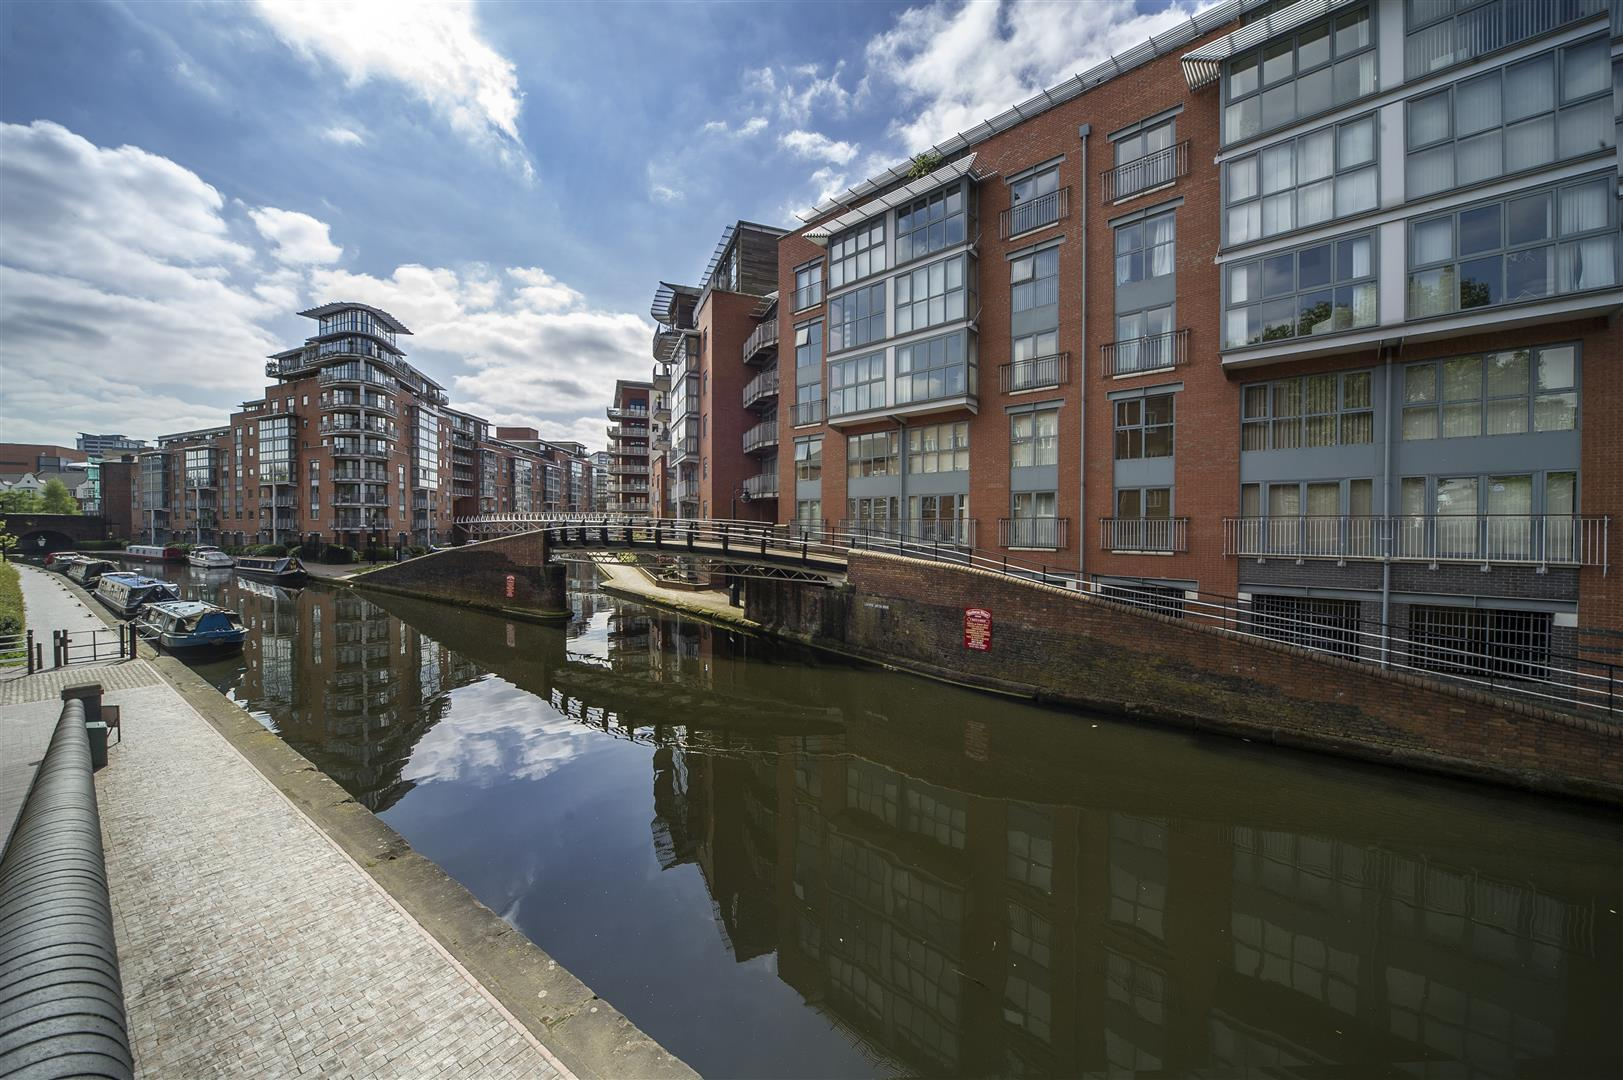 2 Bedrooms Apartment Flat for sale in King Edwards Wharf, Sheepcote Street, Birmingham